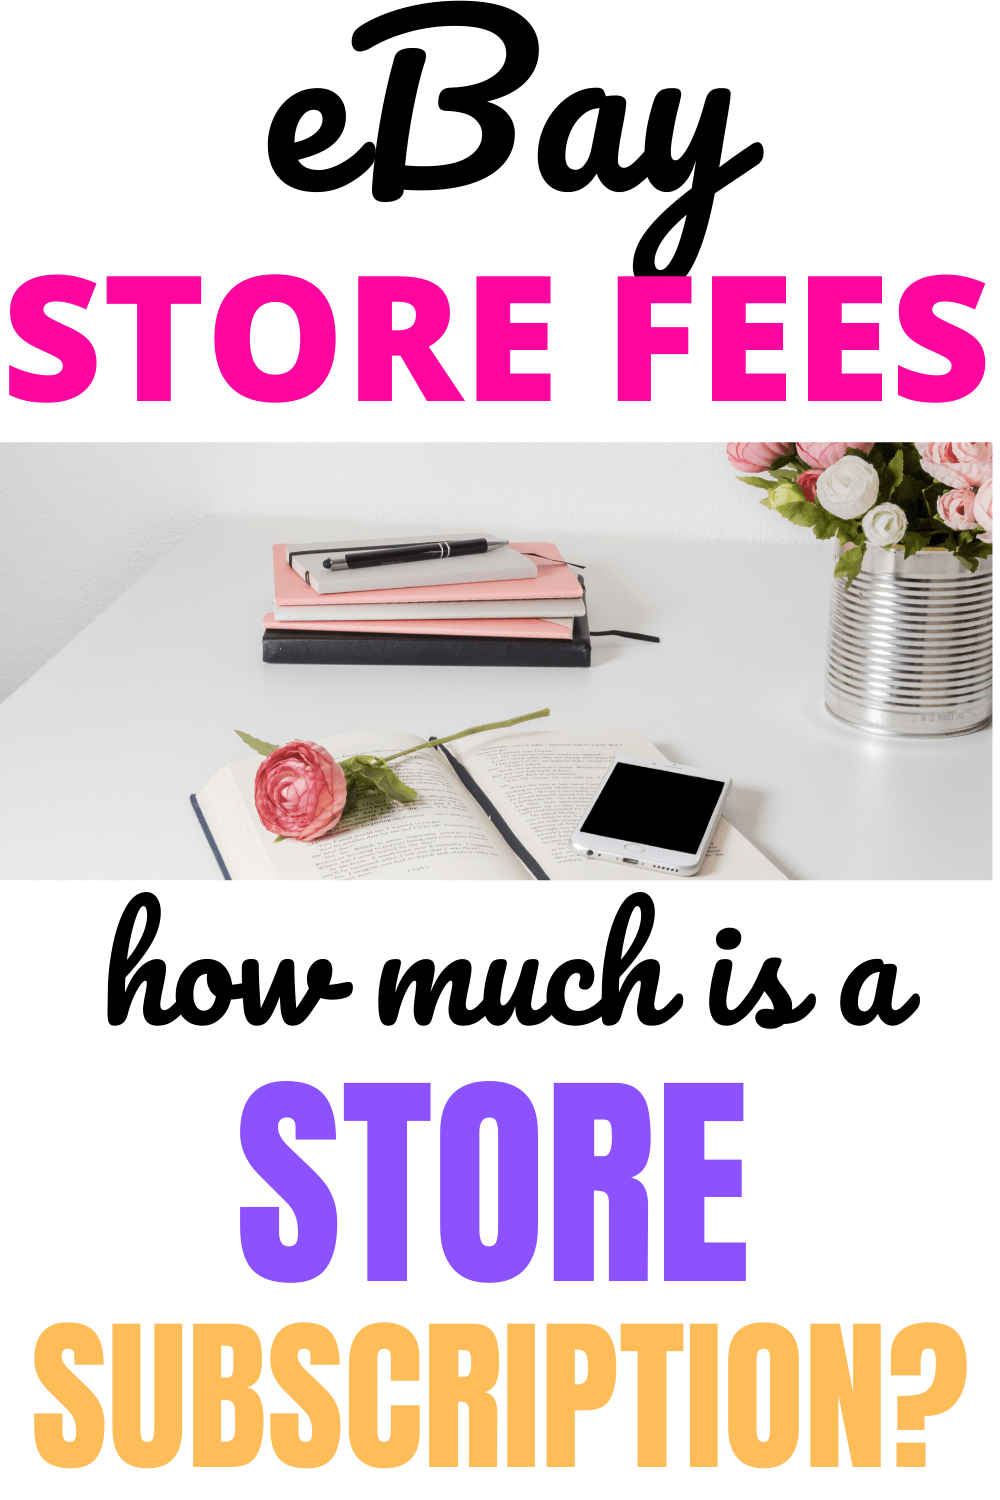 eBay Store Fees: How Much Does A Store Subscription Cost